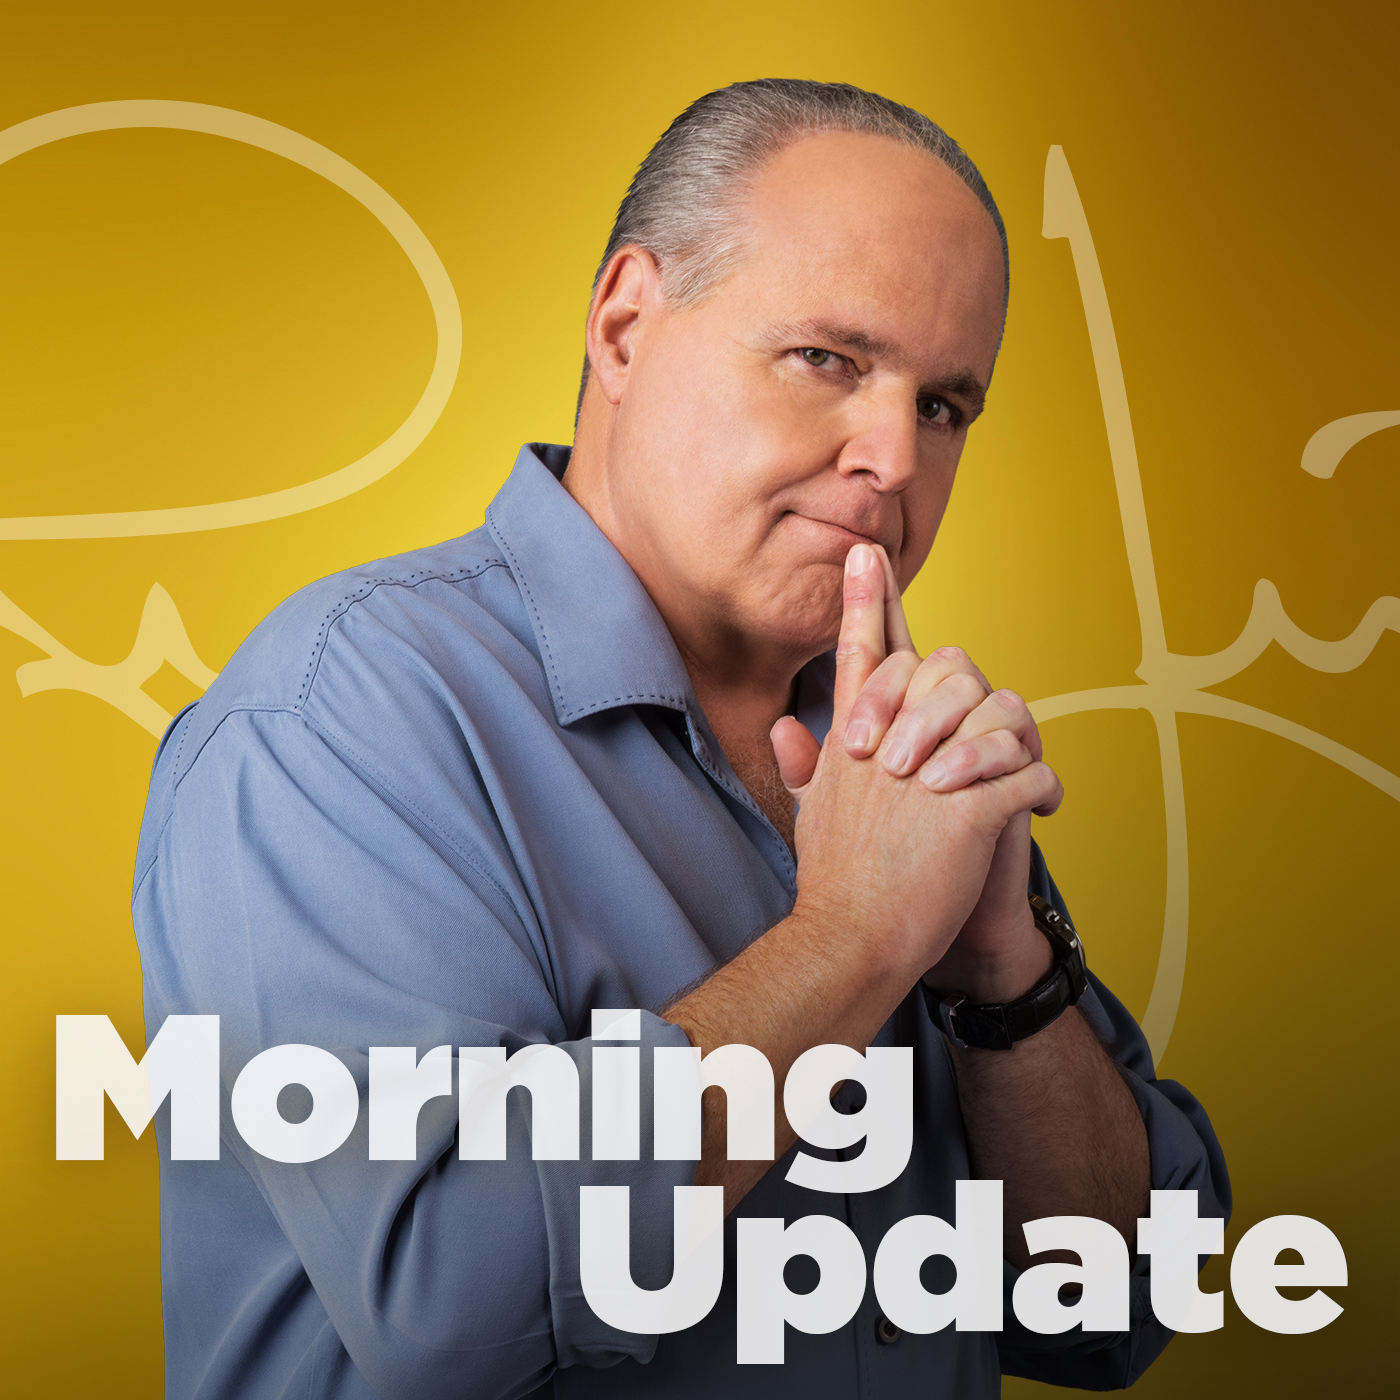 Rush Limbaugh Jan 01, 2020